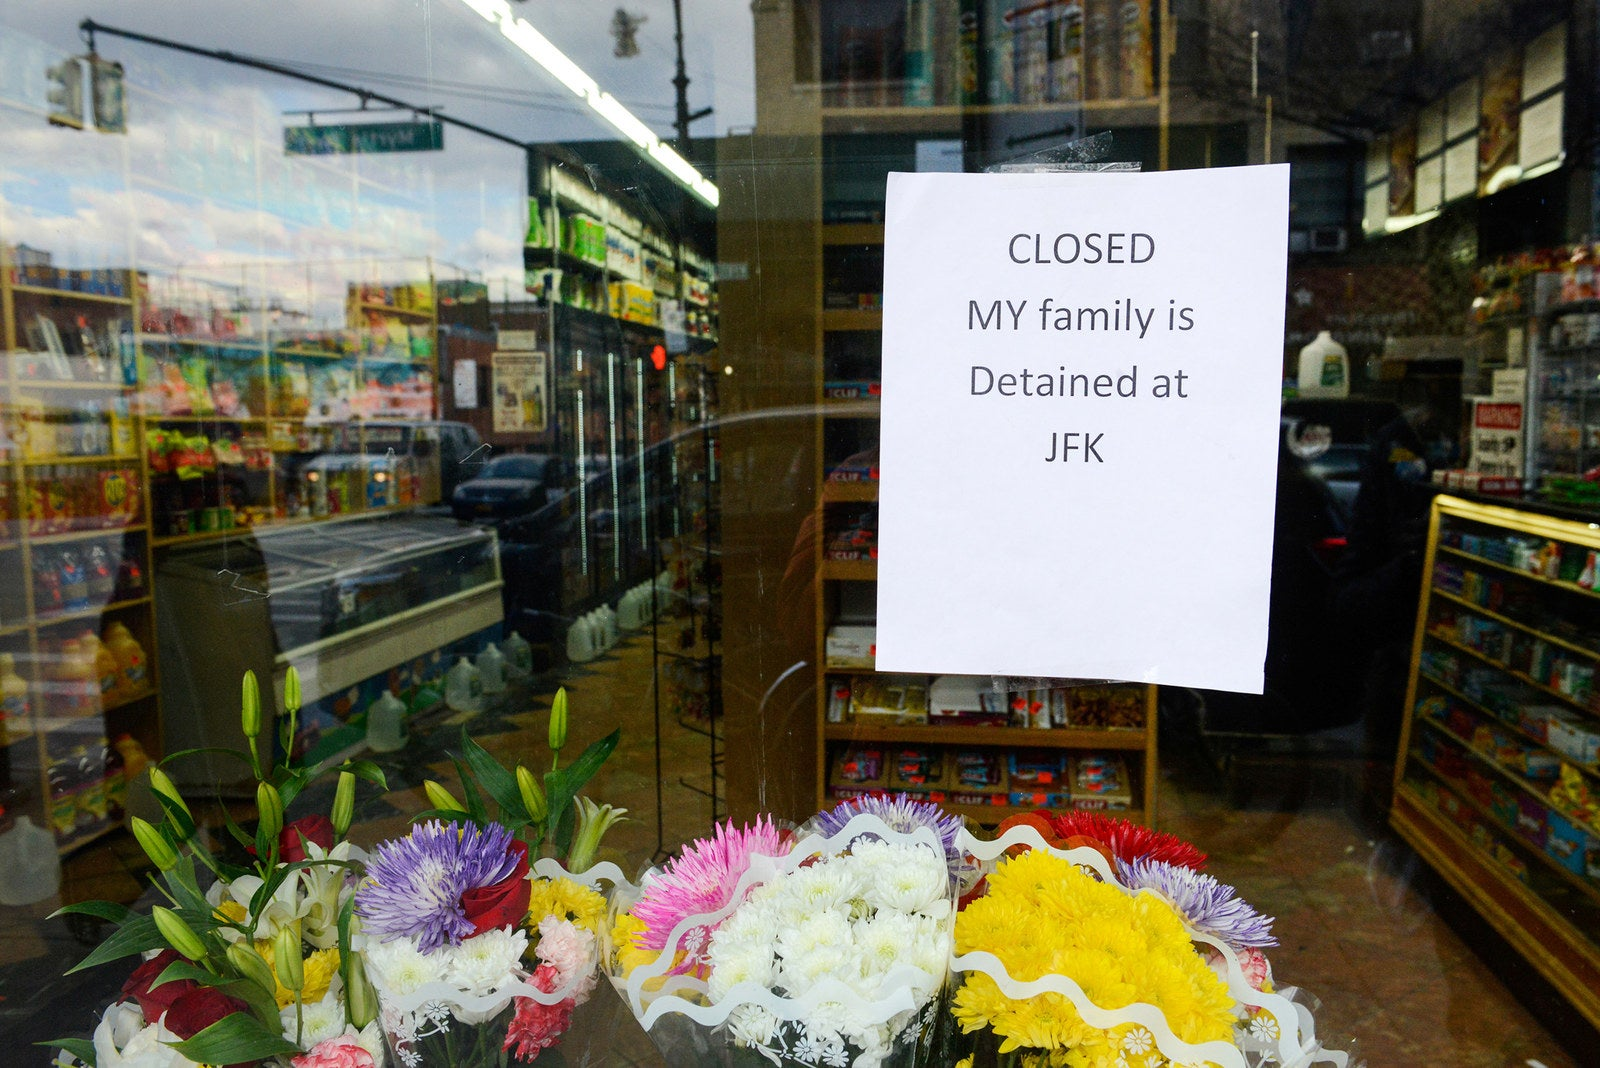 """A sign saying """"My family is detained at JFK"""" hangs in the window of a closed bodega during a Yemeni protest against President Donald Trump's travel ban in Brooklyn on Feb. 2."""